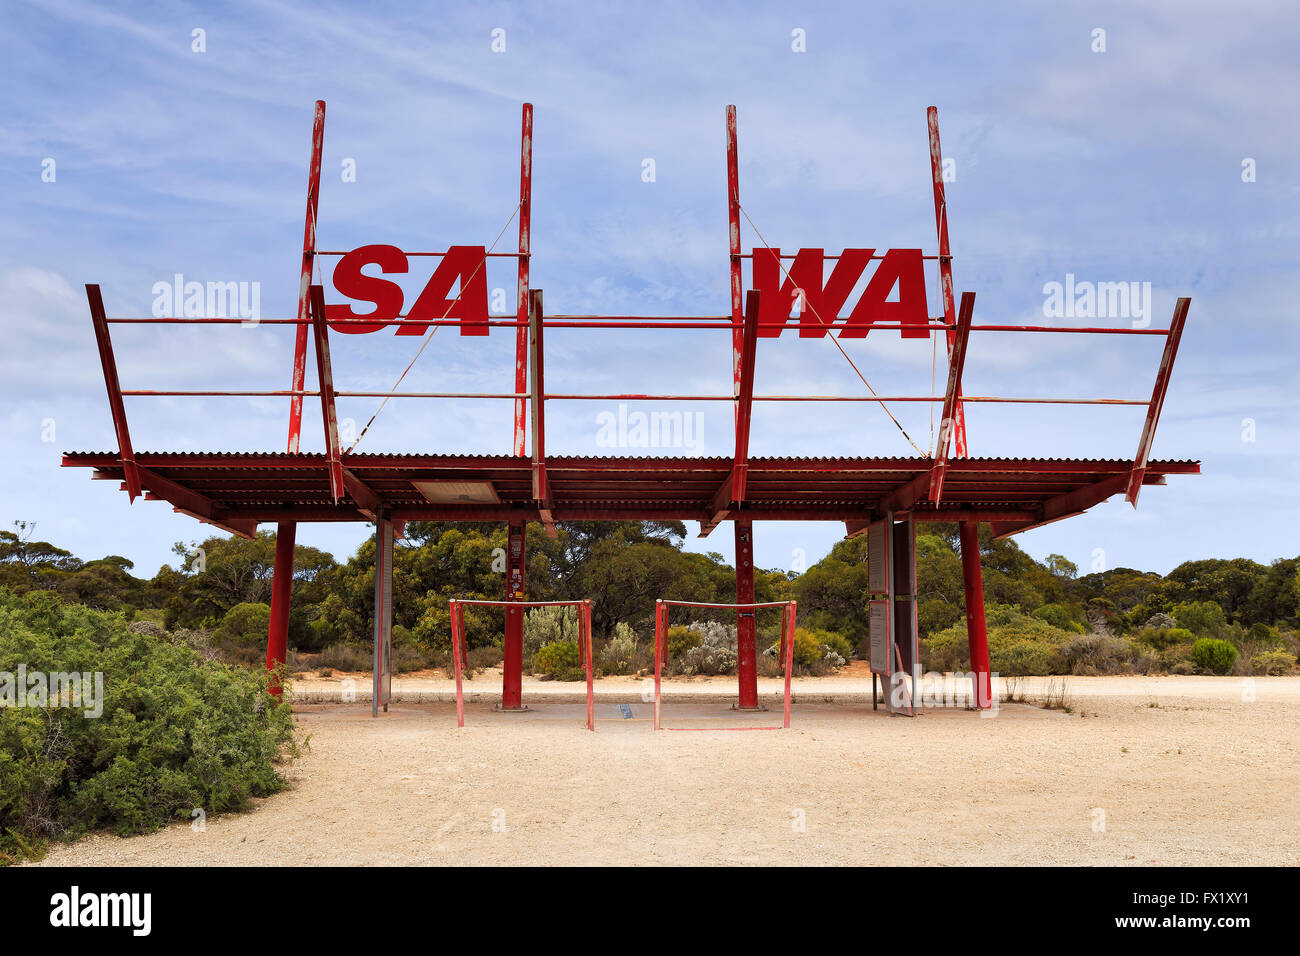 SA WA border village and border sign in a shape of old metal gate pavilion against blue sky in remote outback. - Stock Image